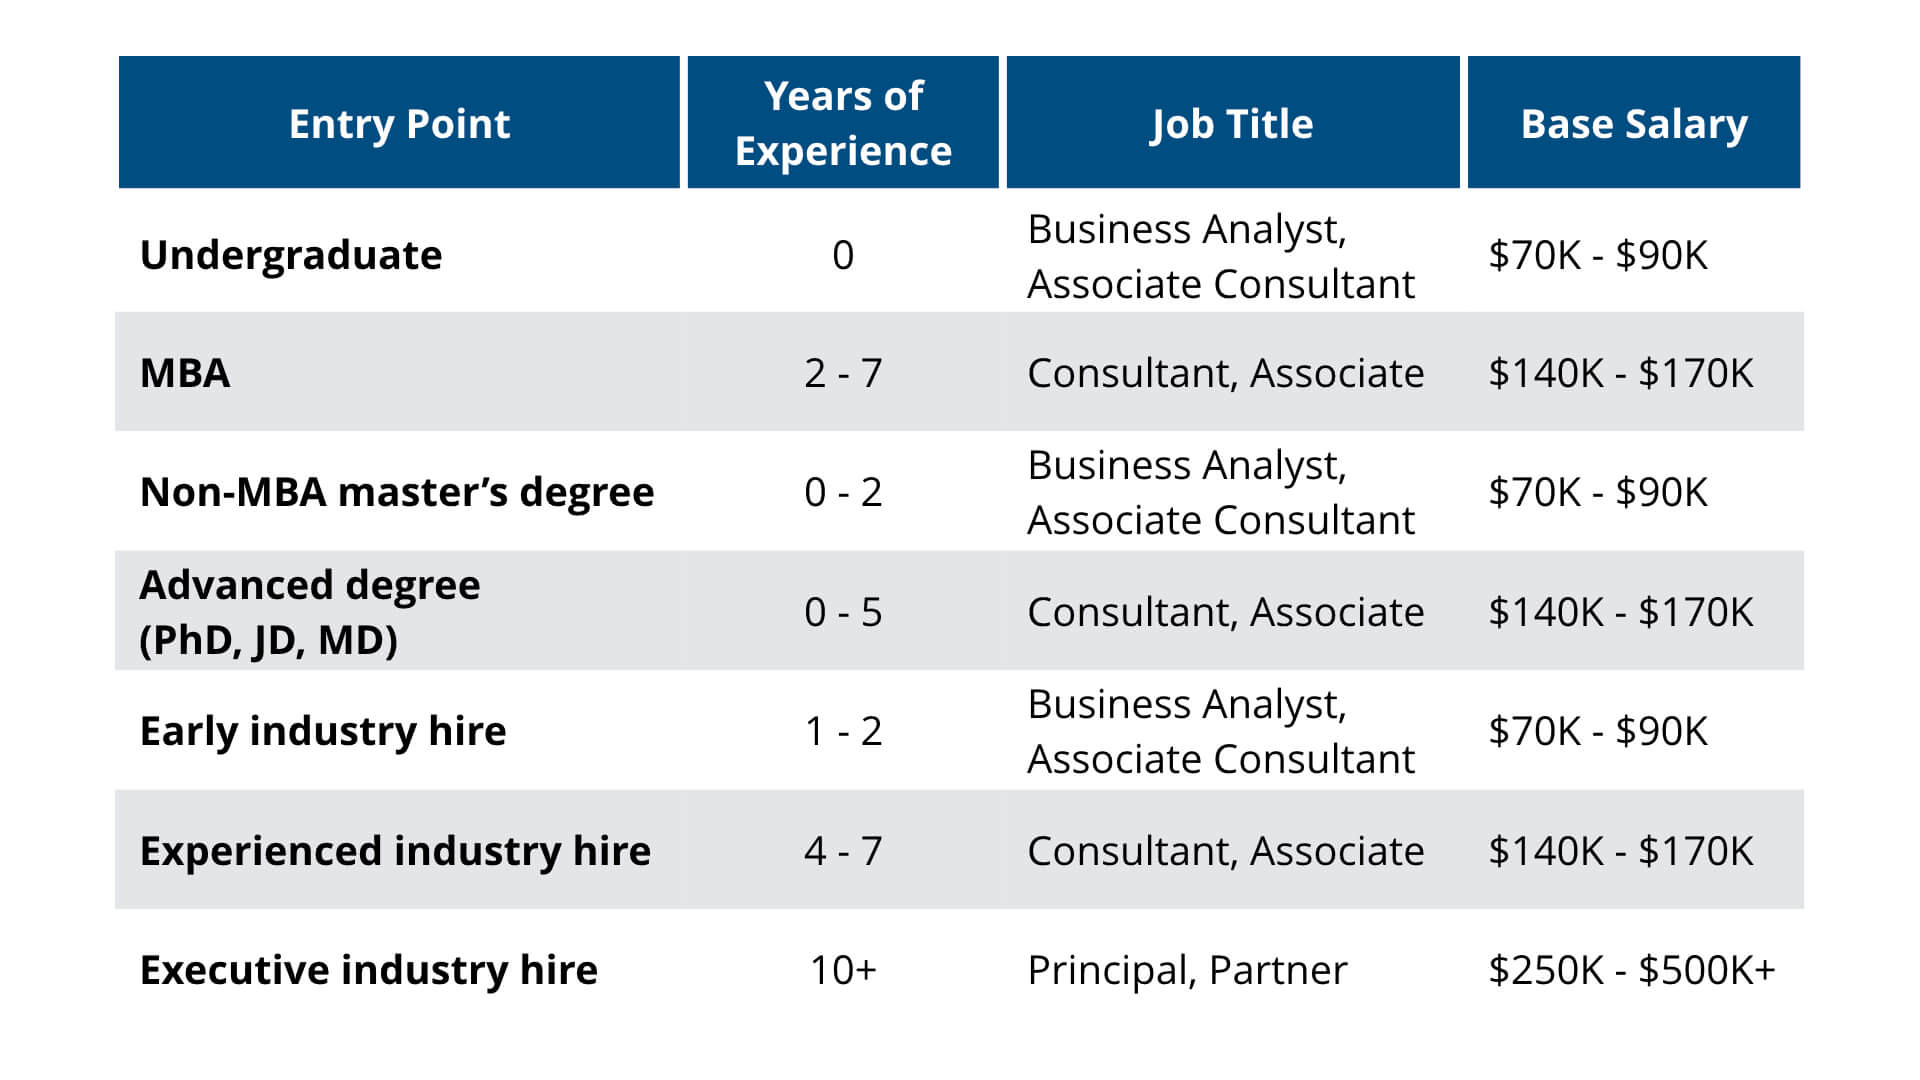 Consulting Career Path Entry Points